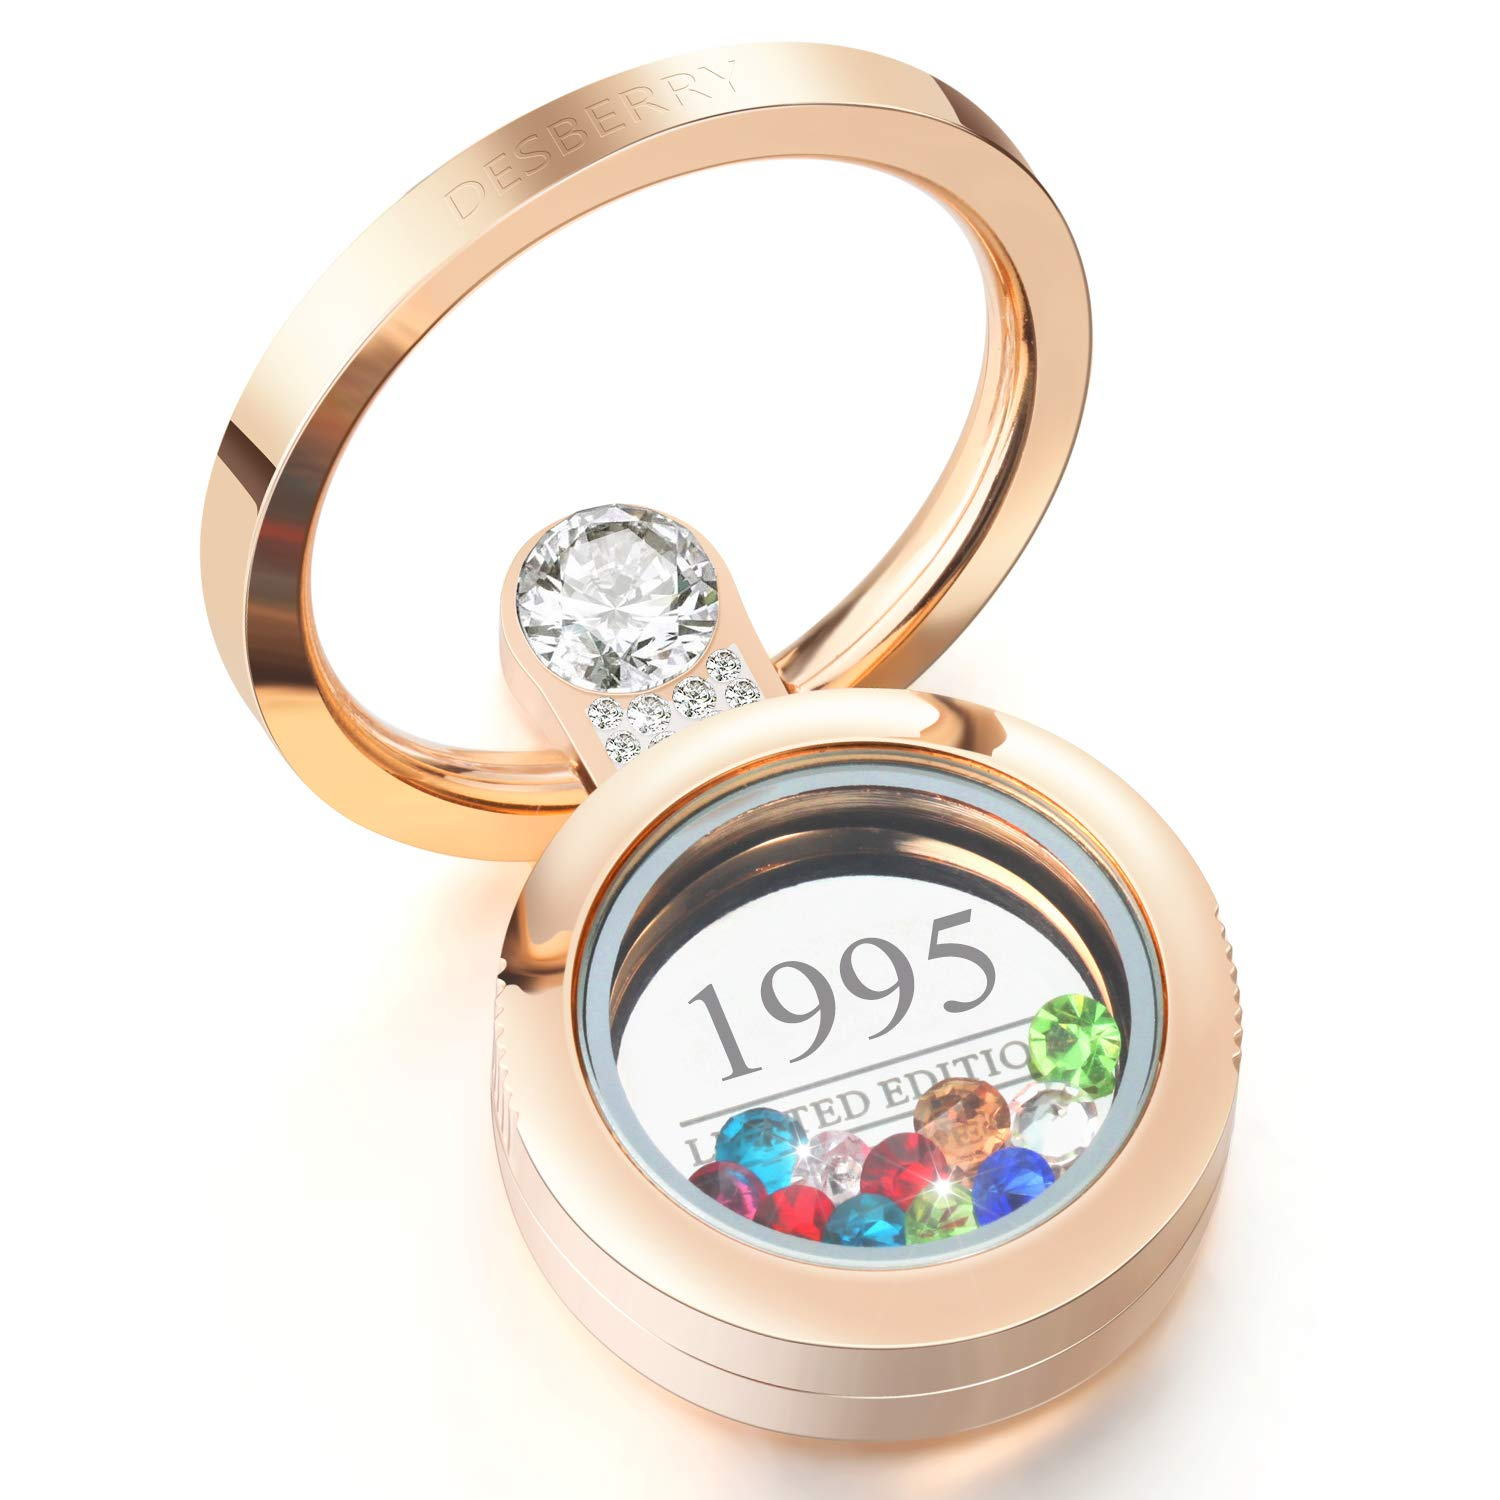 1995 23th Personalized Birthday Gifts For Women Girls Mom Wife Girlfriend Wedding Her Him Couples 23 Years Customizable Living Locket Cell Phone Ring